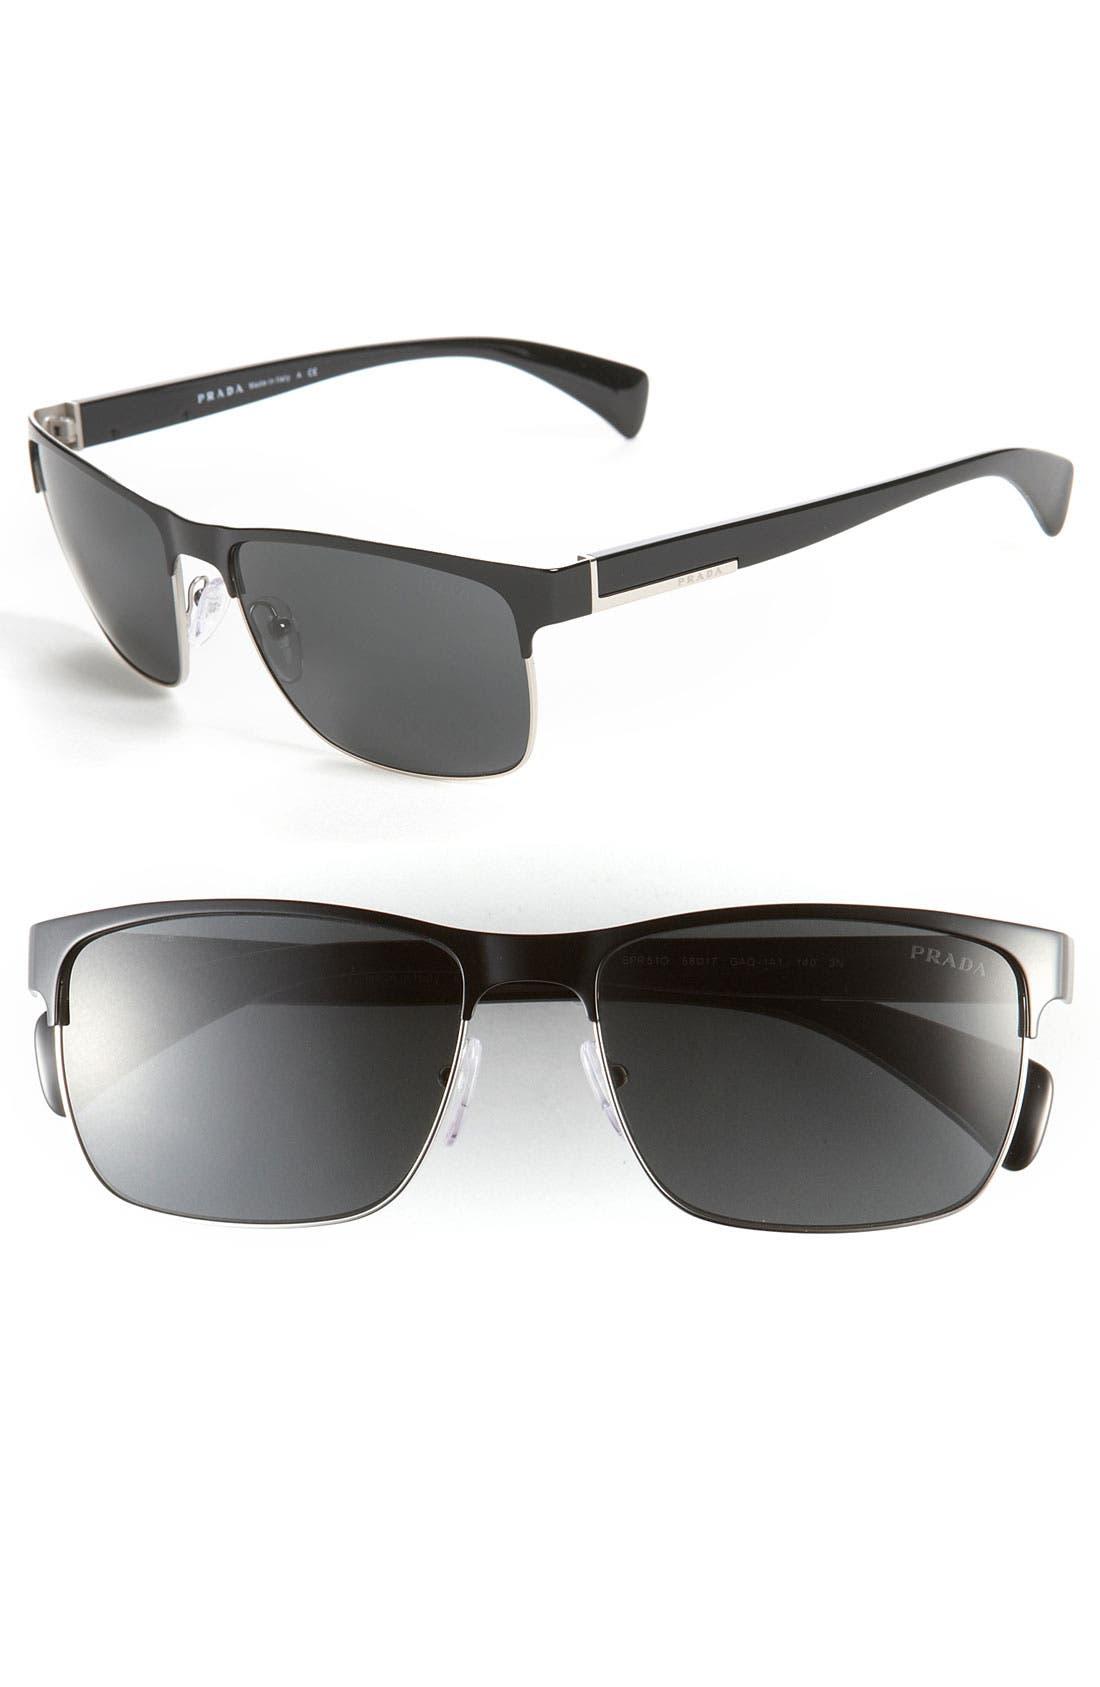 Alternate Image 1 Selected - Prada 58mm Sunglasses